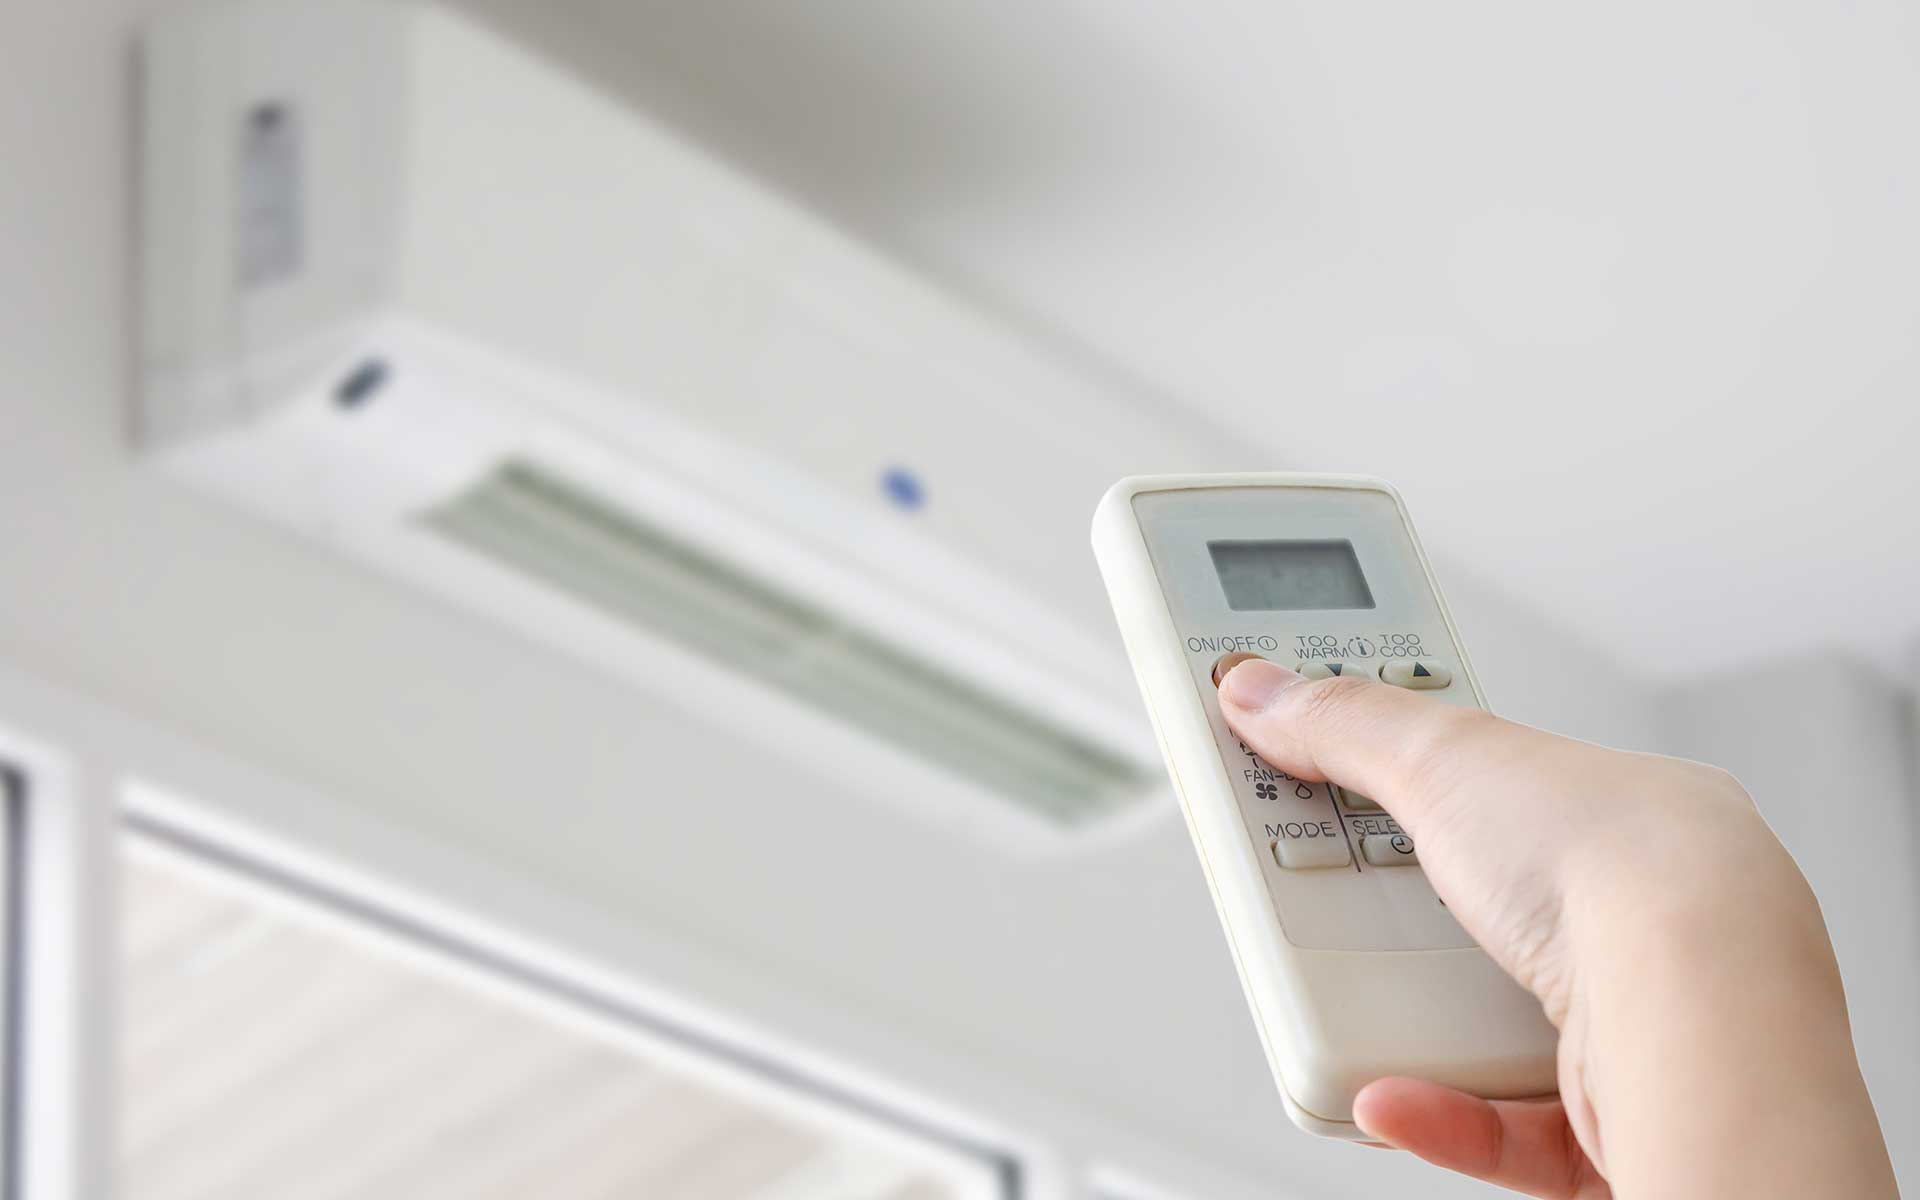 Image - Person using remote control to power on a heating and cooling unit